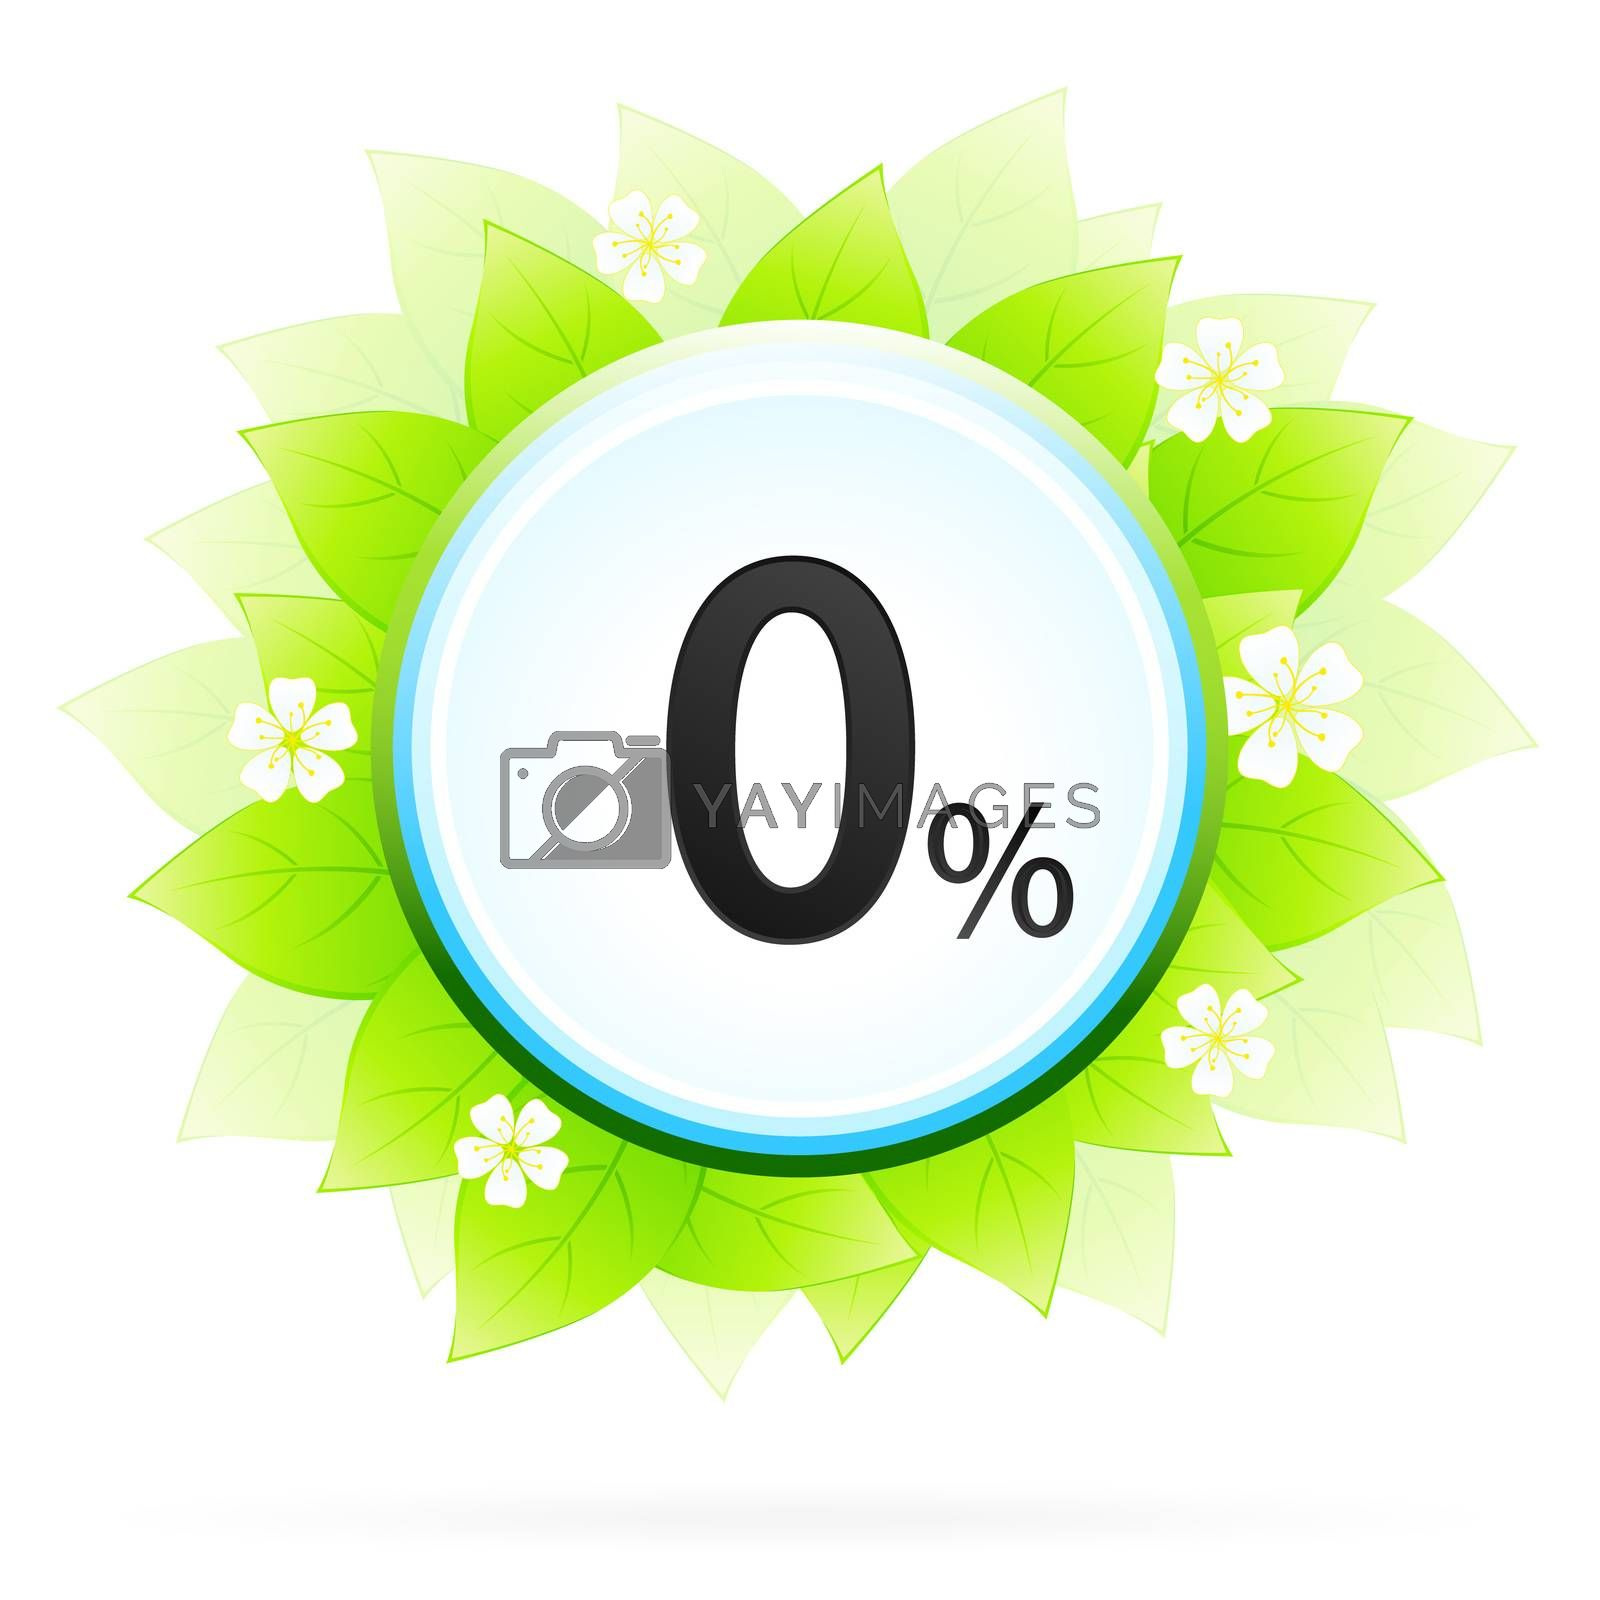 0% Icon by WaD